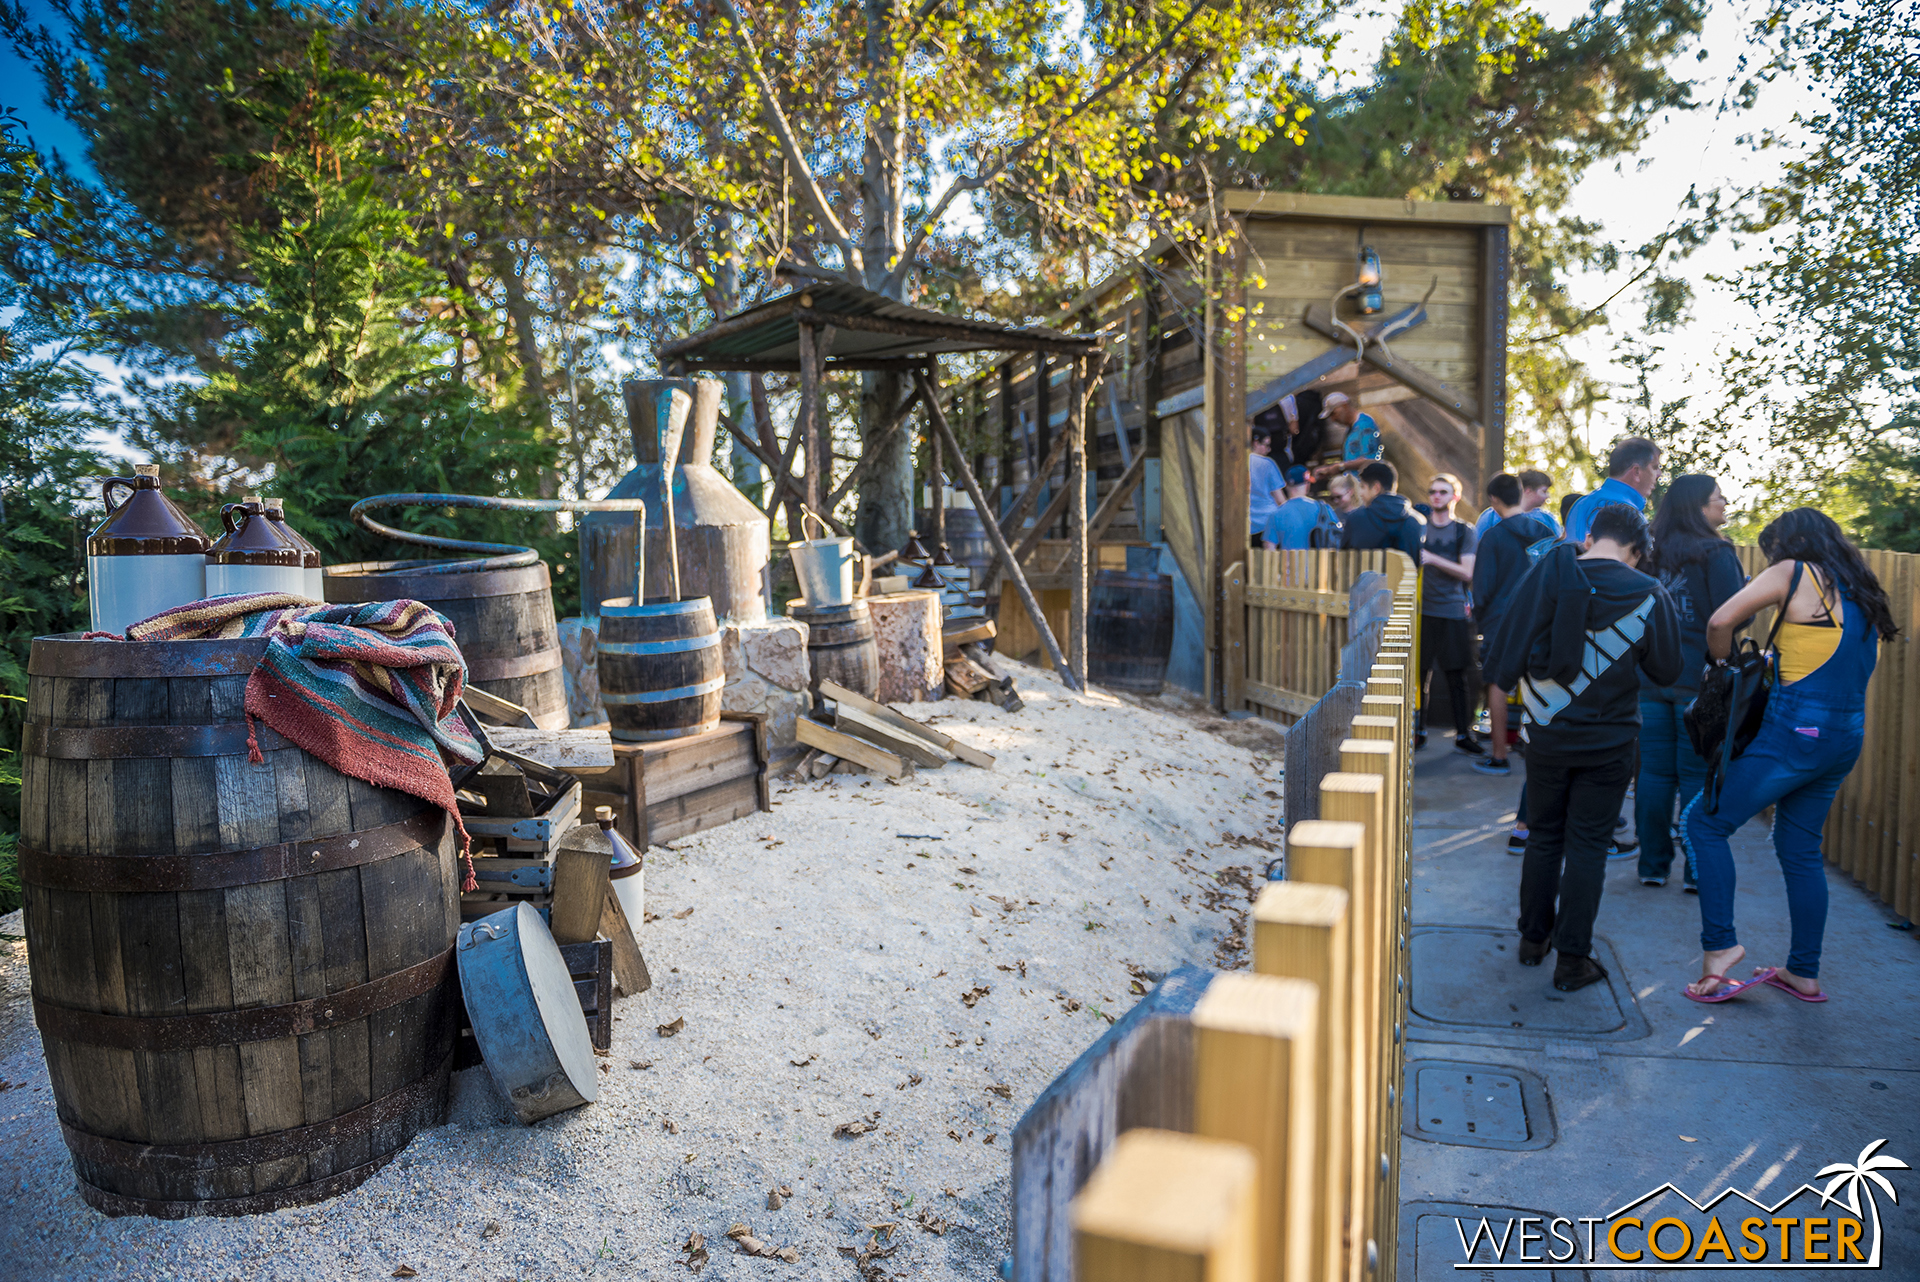 The park has added a redone bridge and some encampment theming as well.